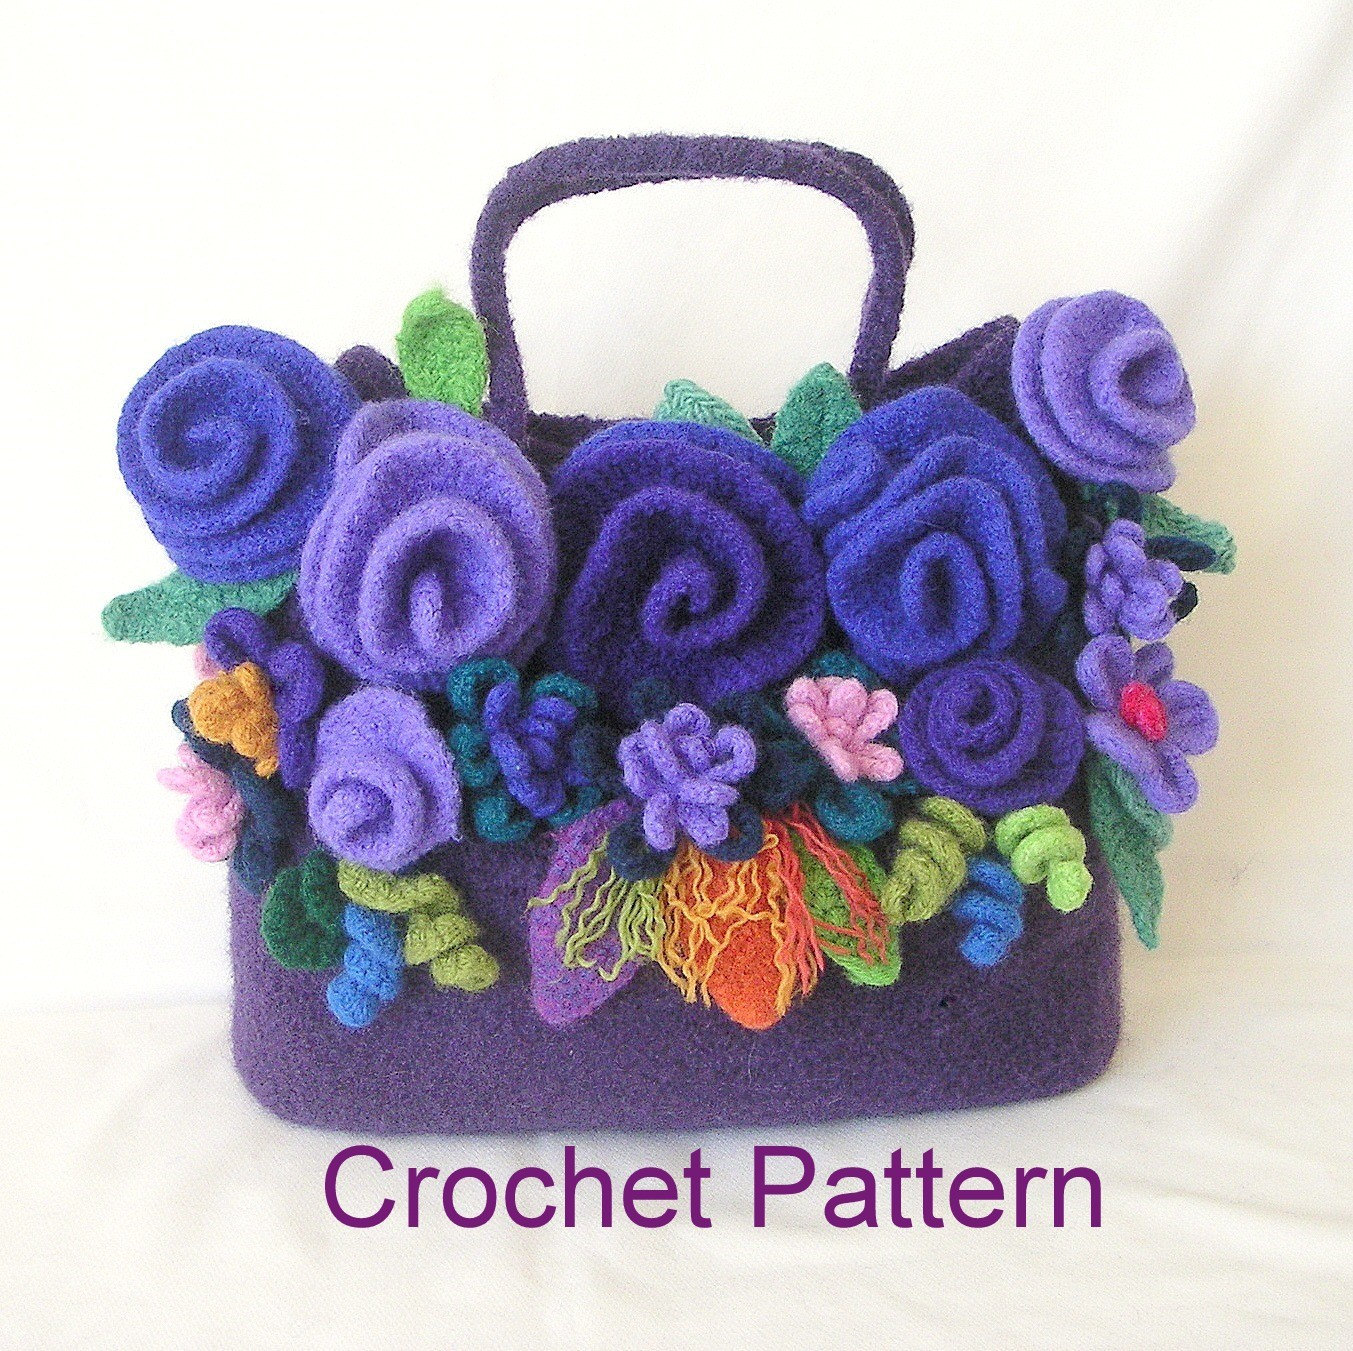 How To Make Crochet Bags Step By Step : How to make Crochet Felted Flower Bag by GraceKnittingPattern